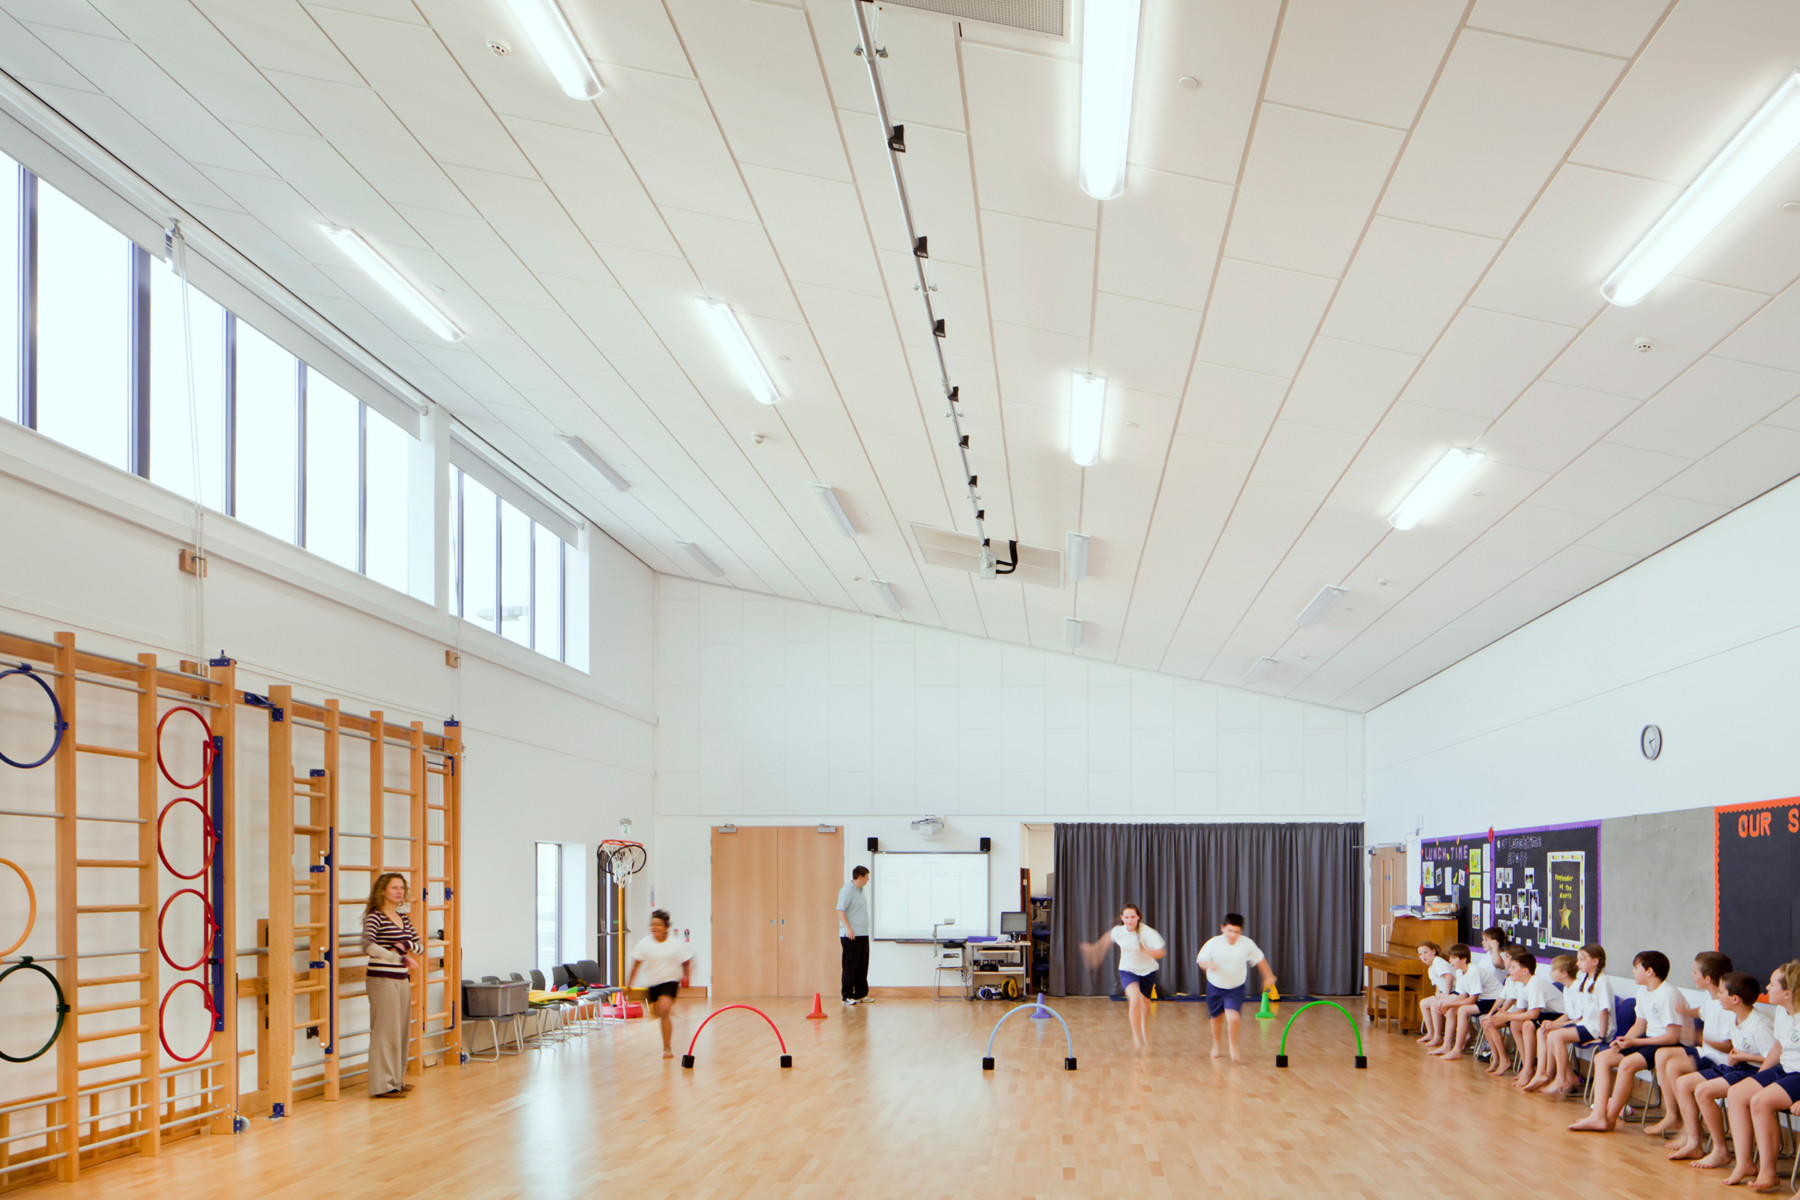 Sarah-Wigglesworth-Architects Takeley-Primary-School Hall 1800